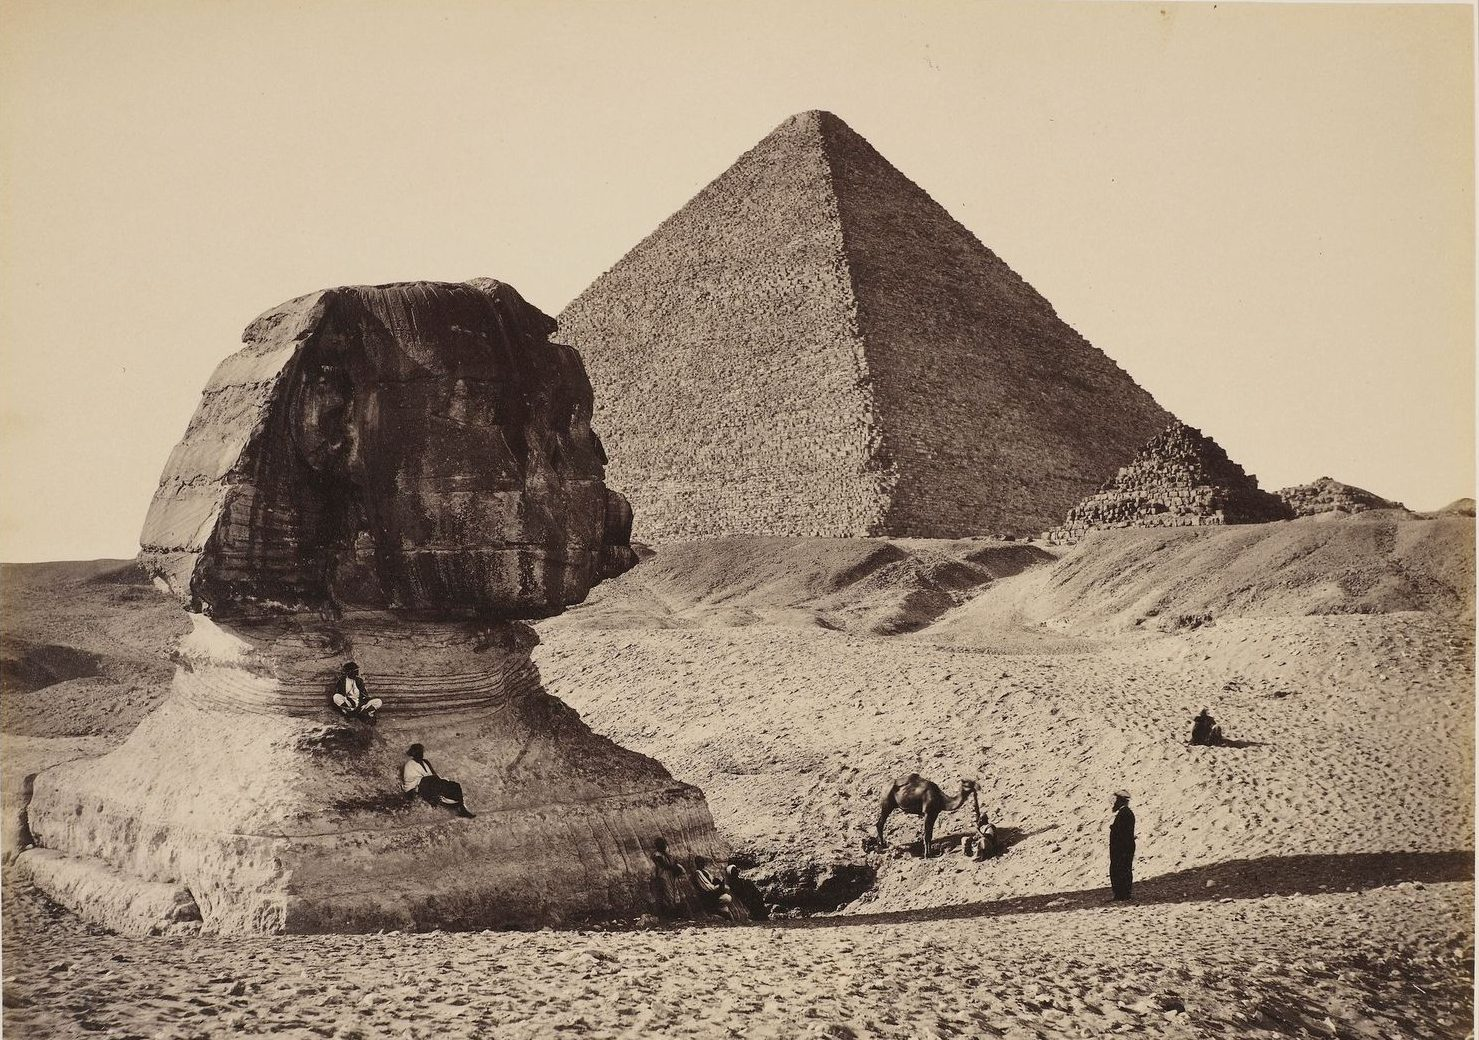 The Sphinx, the Great Pyramid and the two lesser pyramids in Ghizeh, Egypt. one of the photographs on display at the Sights of Wonder exhibition, now online, at the Barber Institute of Fine Arts